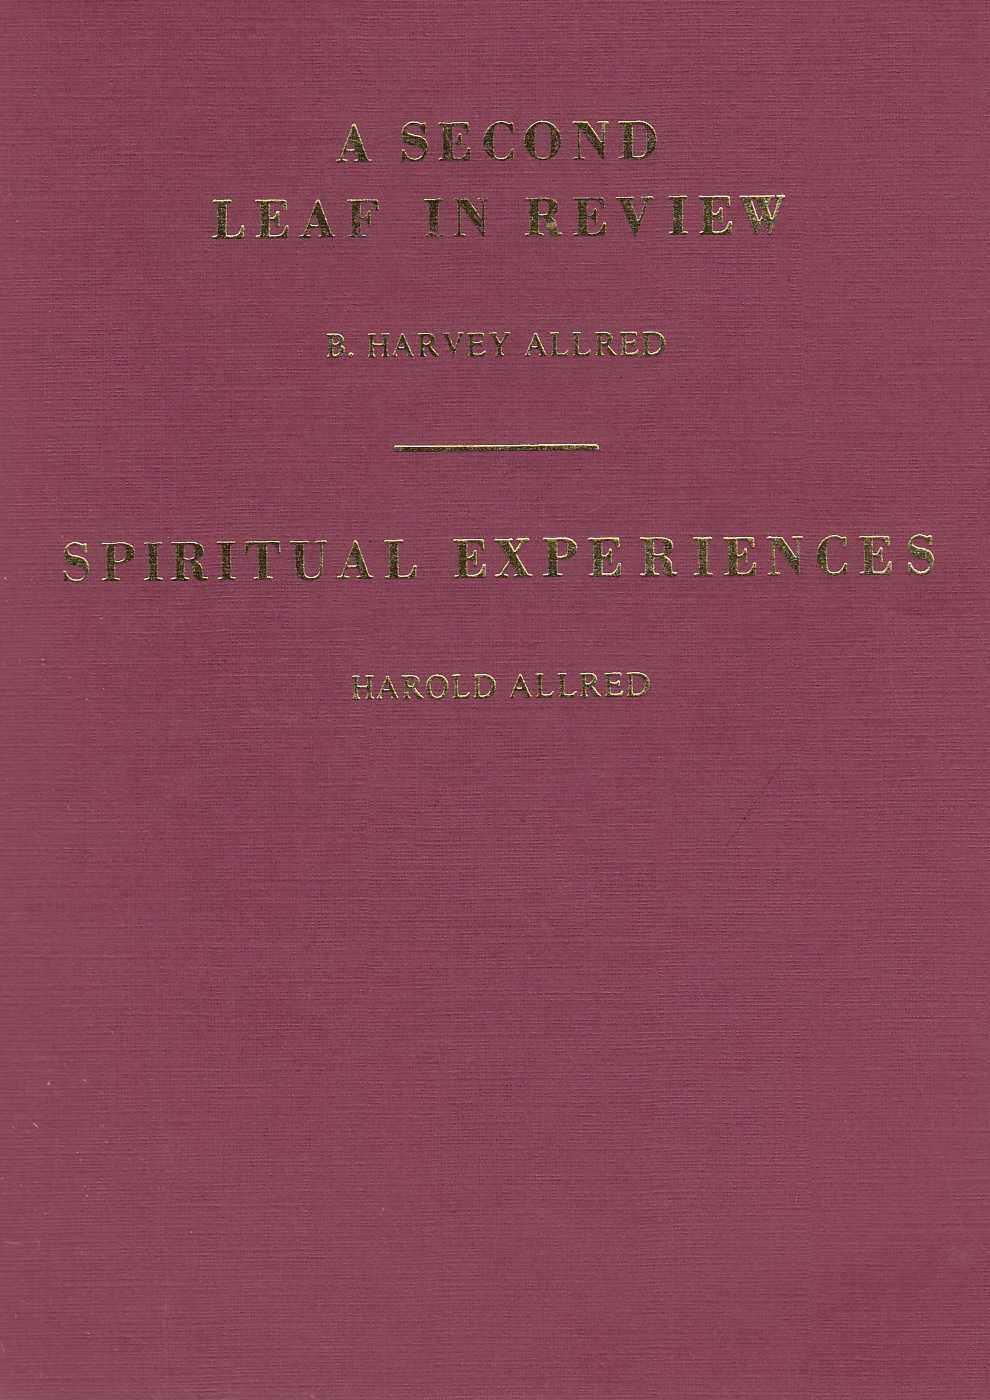 RHEA ALLRED KUNZ (COMPILER & EDITOR) - Second Leaf in Review. B. Harvey Allred (1870 - 1937).  Spiritual Experiences of Harold Allred (1900-1981).